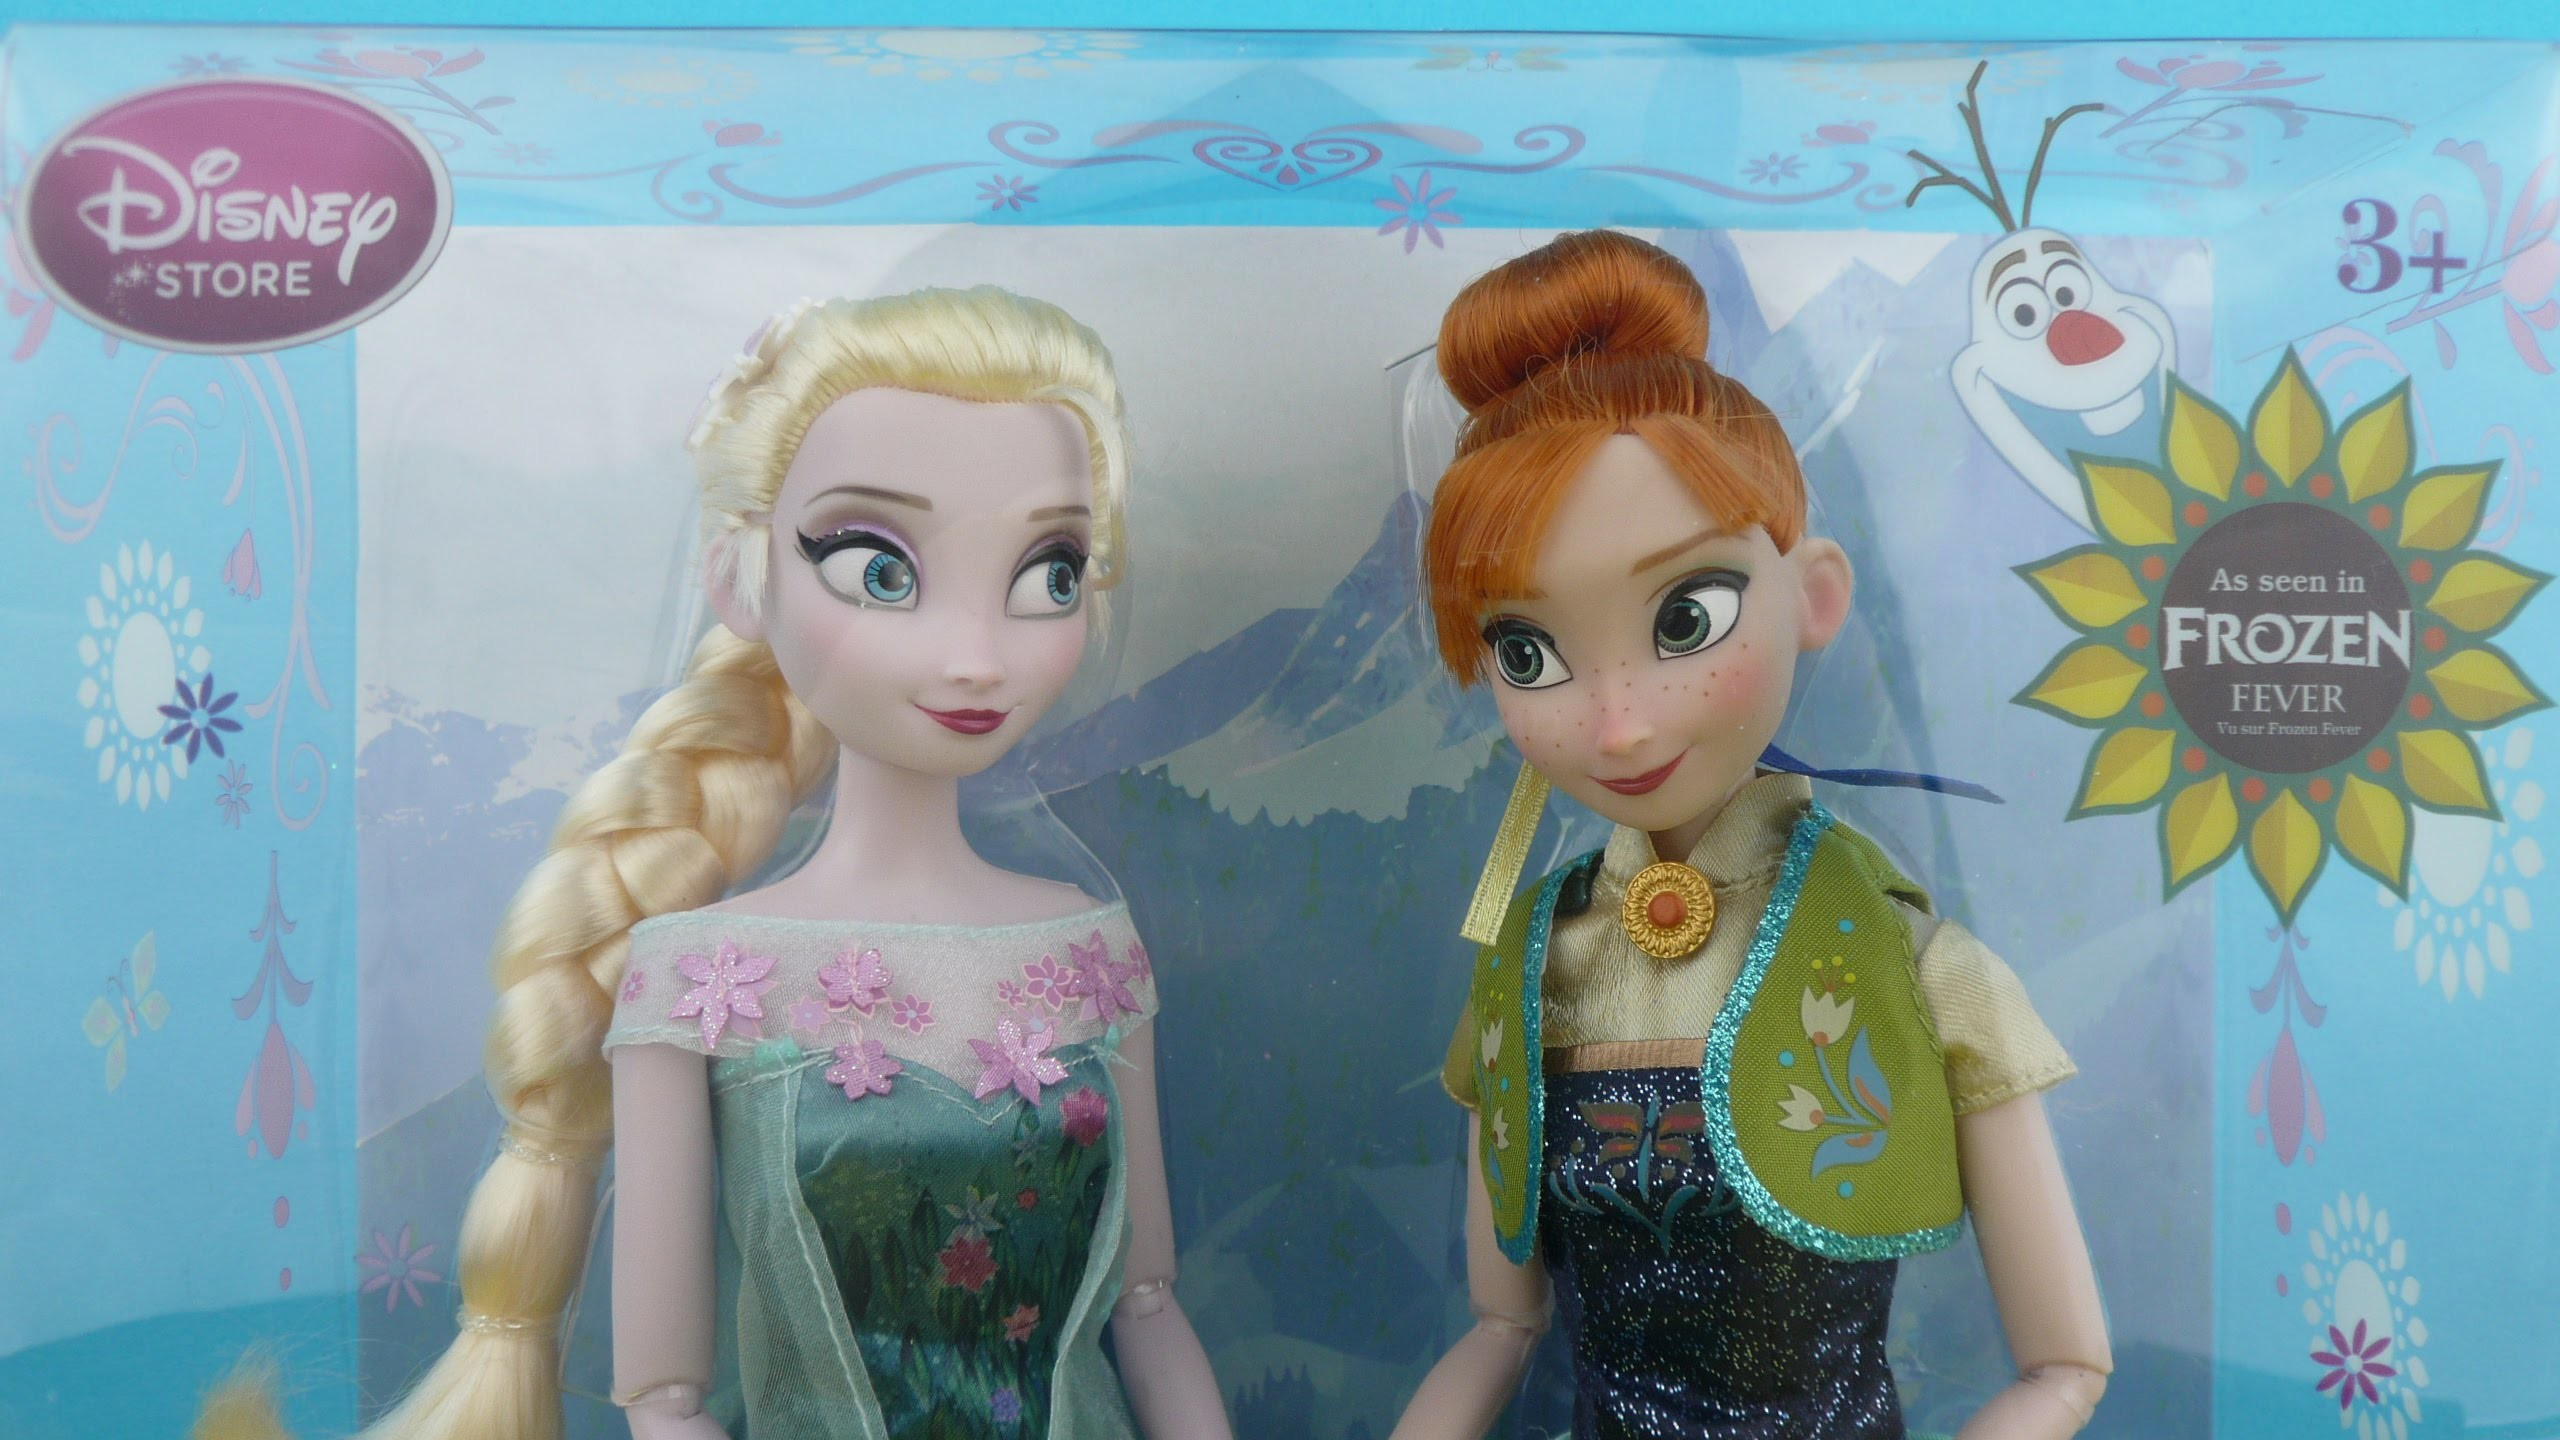 2560x1440 NEW Disney FROZEN FEVER Elsa Anna Summer Solstice Dolls Set Official Disney  Store Toy Review - YouTube